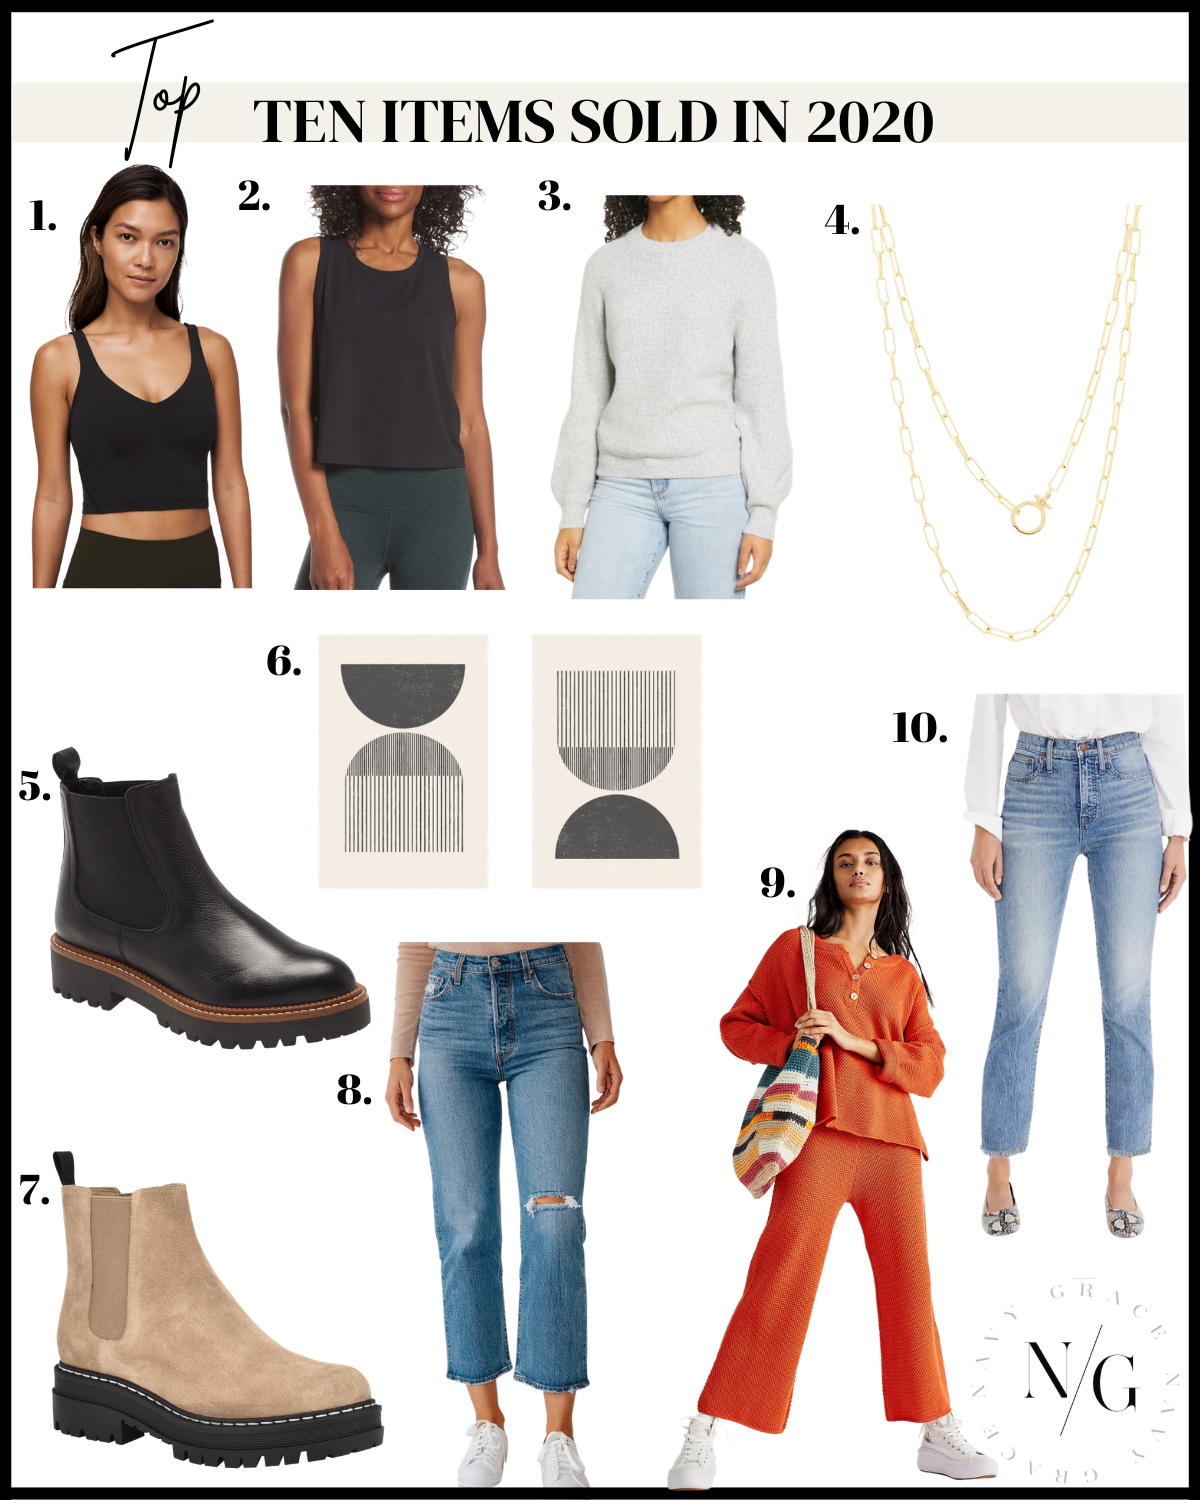 top 10 items of 2020 |Top Items by popular San Diego fashion blog, Navy Grace: collage image of a black crop top tank, black tank, grey sweater, gold necklace, black waterproof boots, modern black and white prints, tan suede boots, red sweater set, and cropped denim.